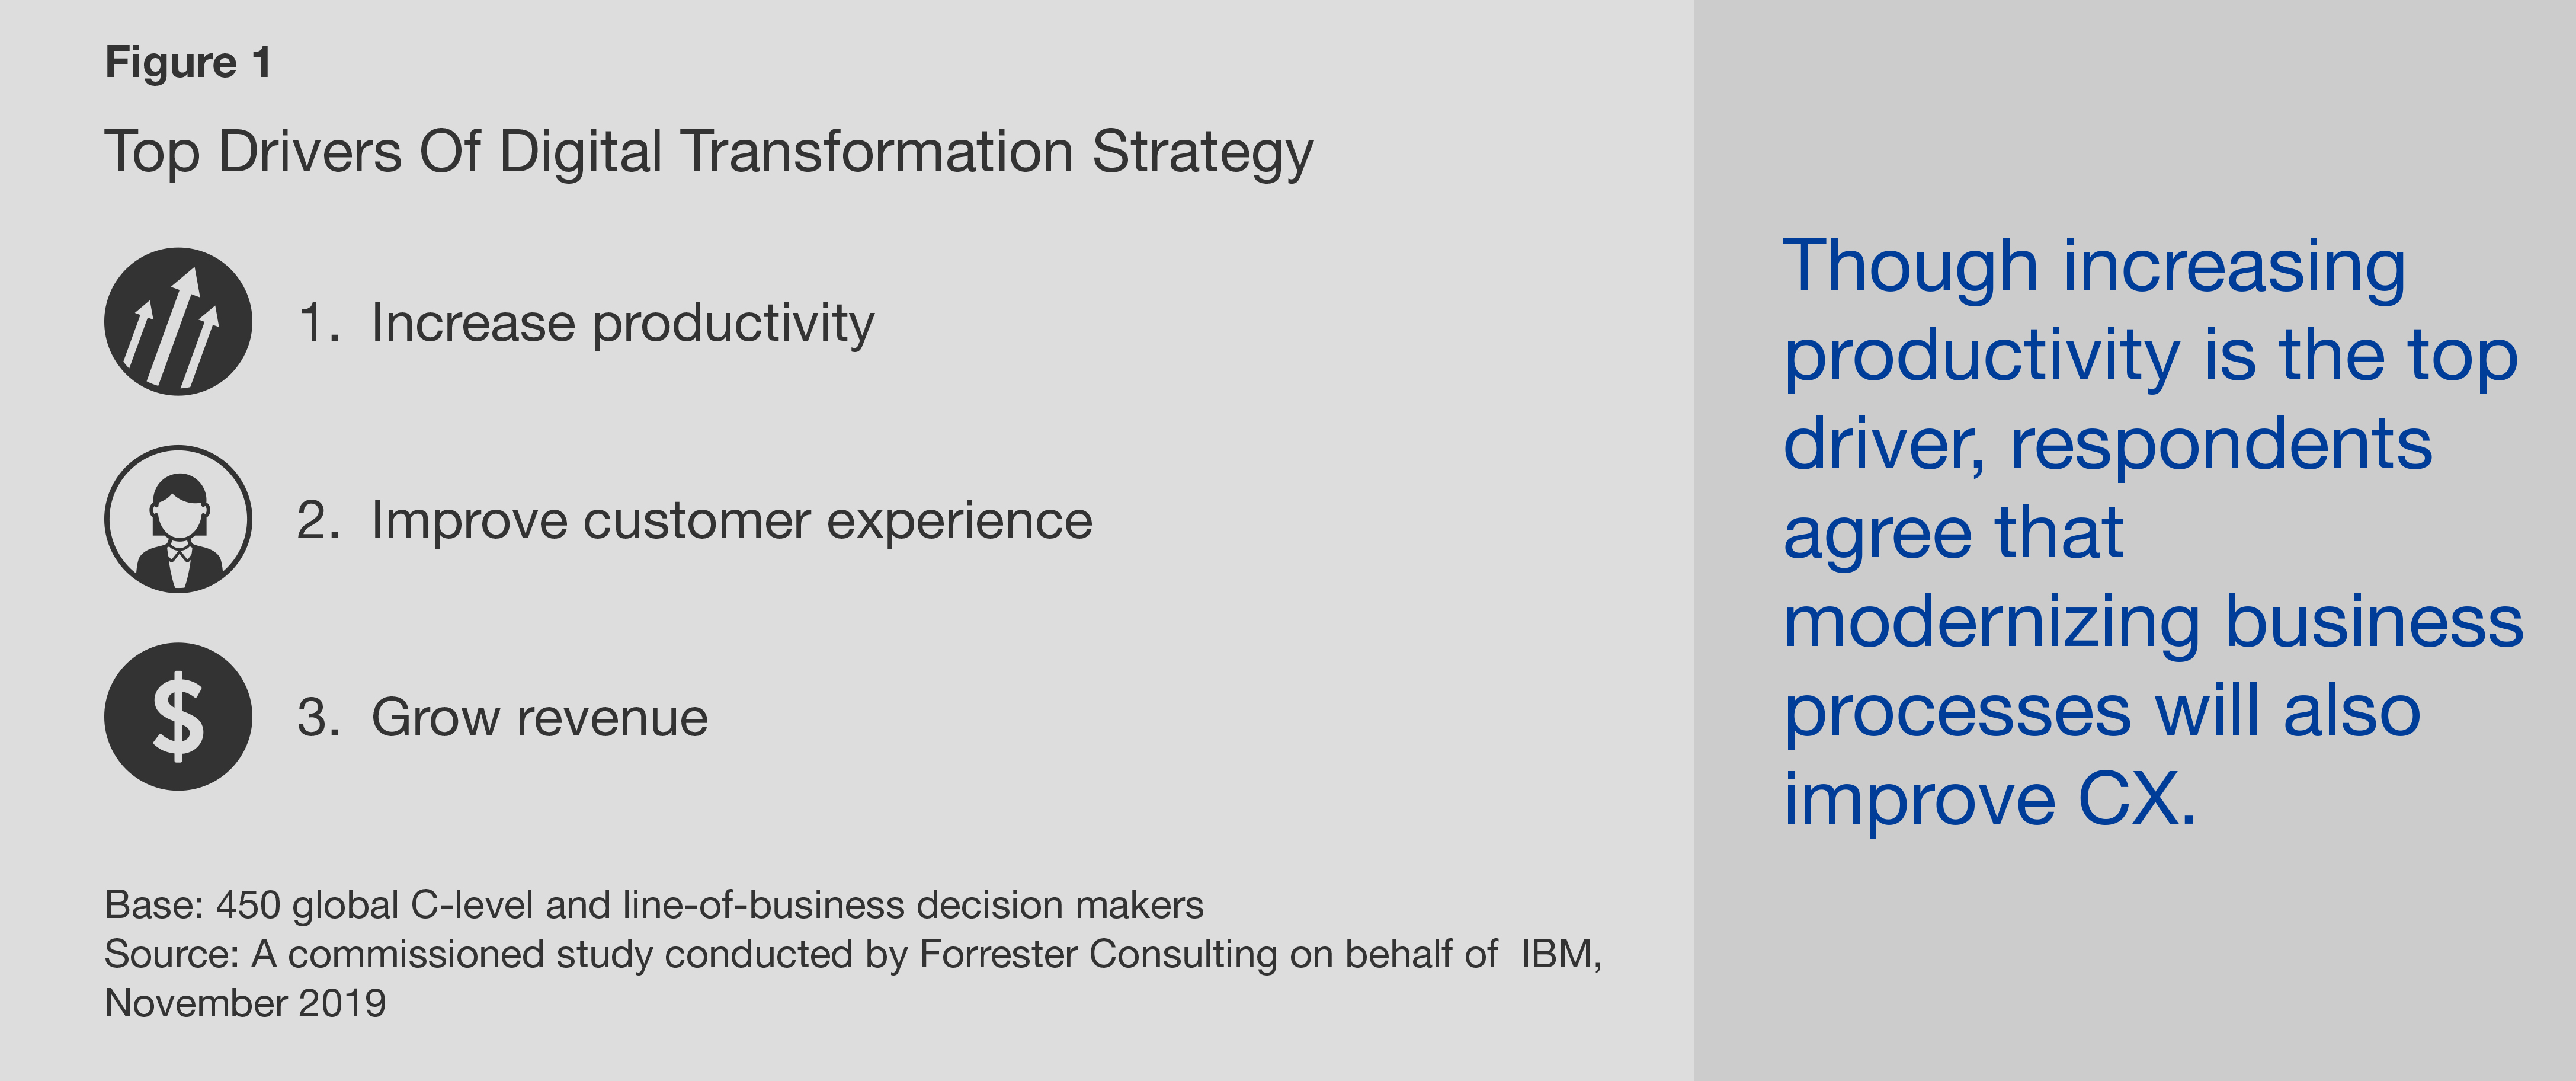 Top Drivers of Digital Transformation Strategy